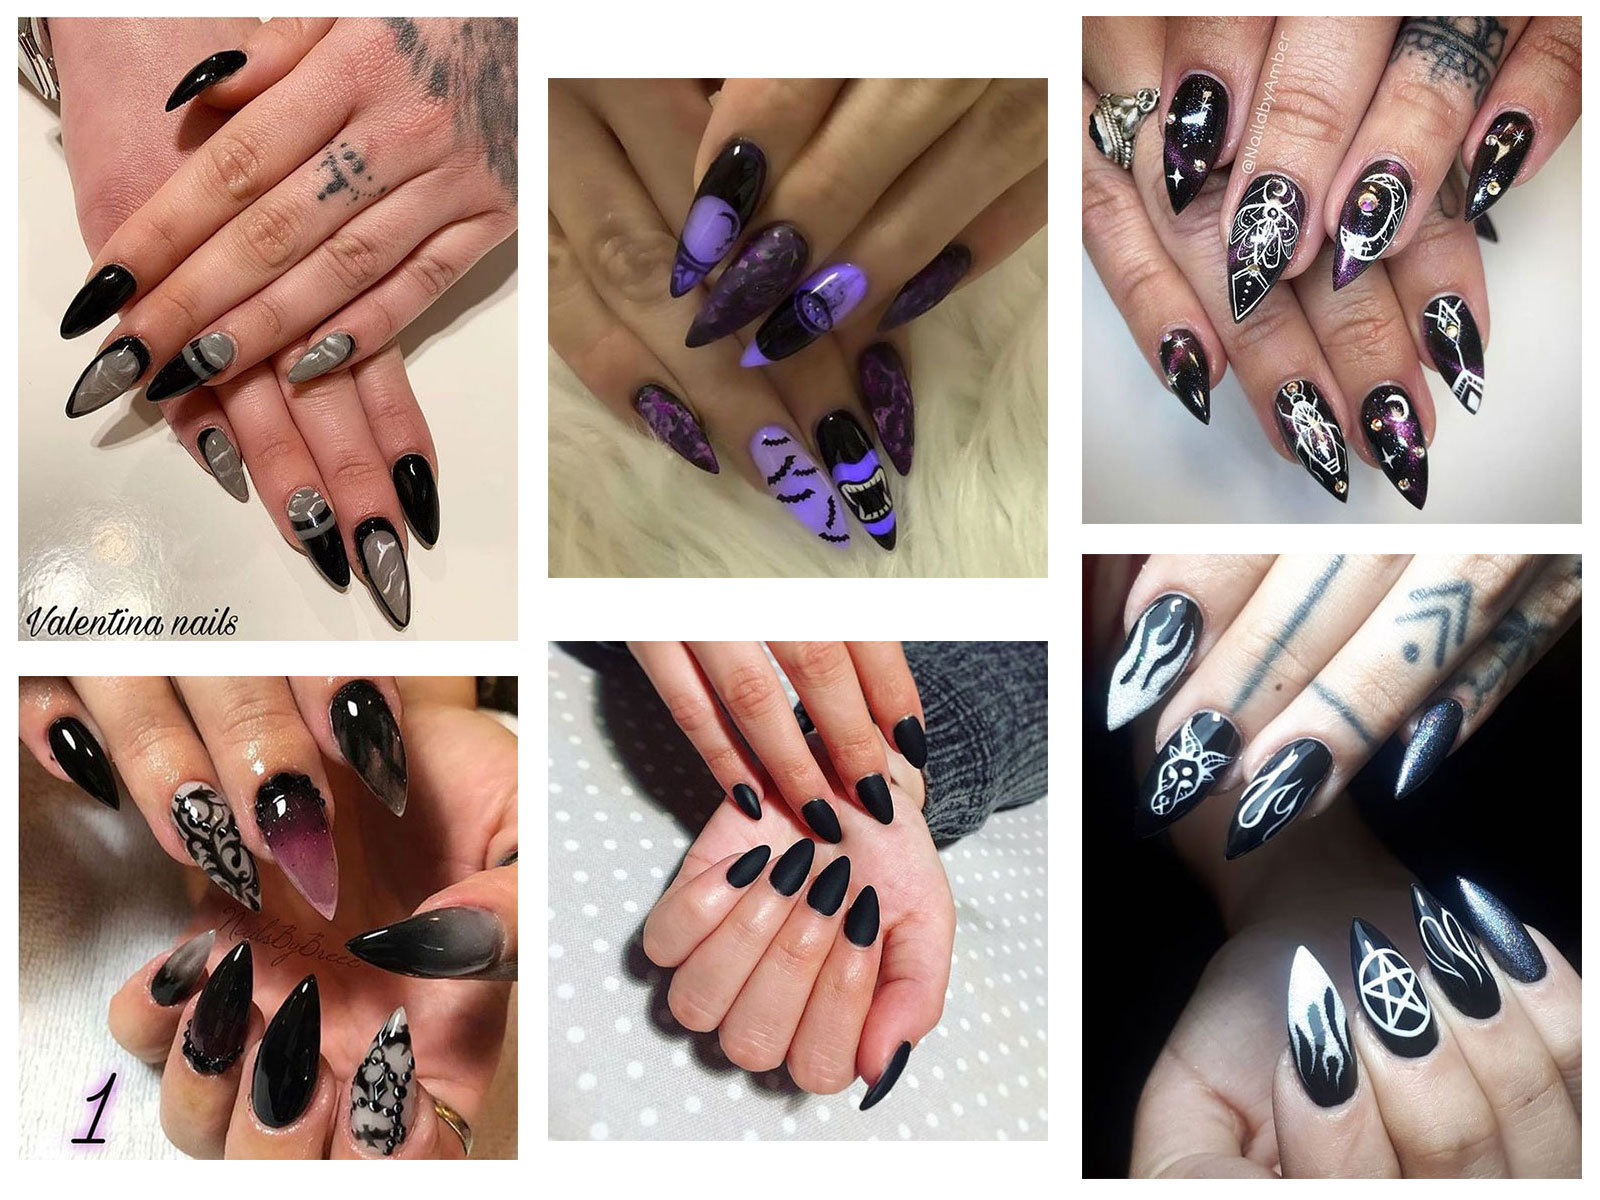 25-Horror-Scary-Halloween-Witch-Nails-Art-Designs-Ideas-2019-F